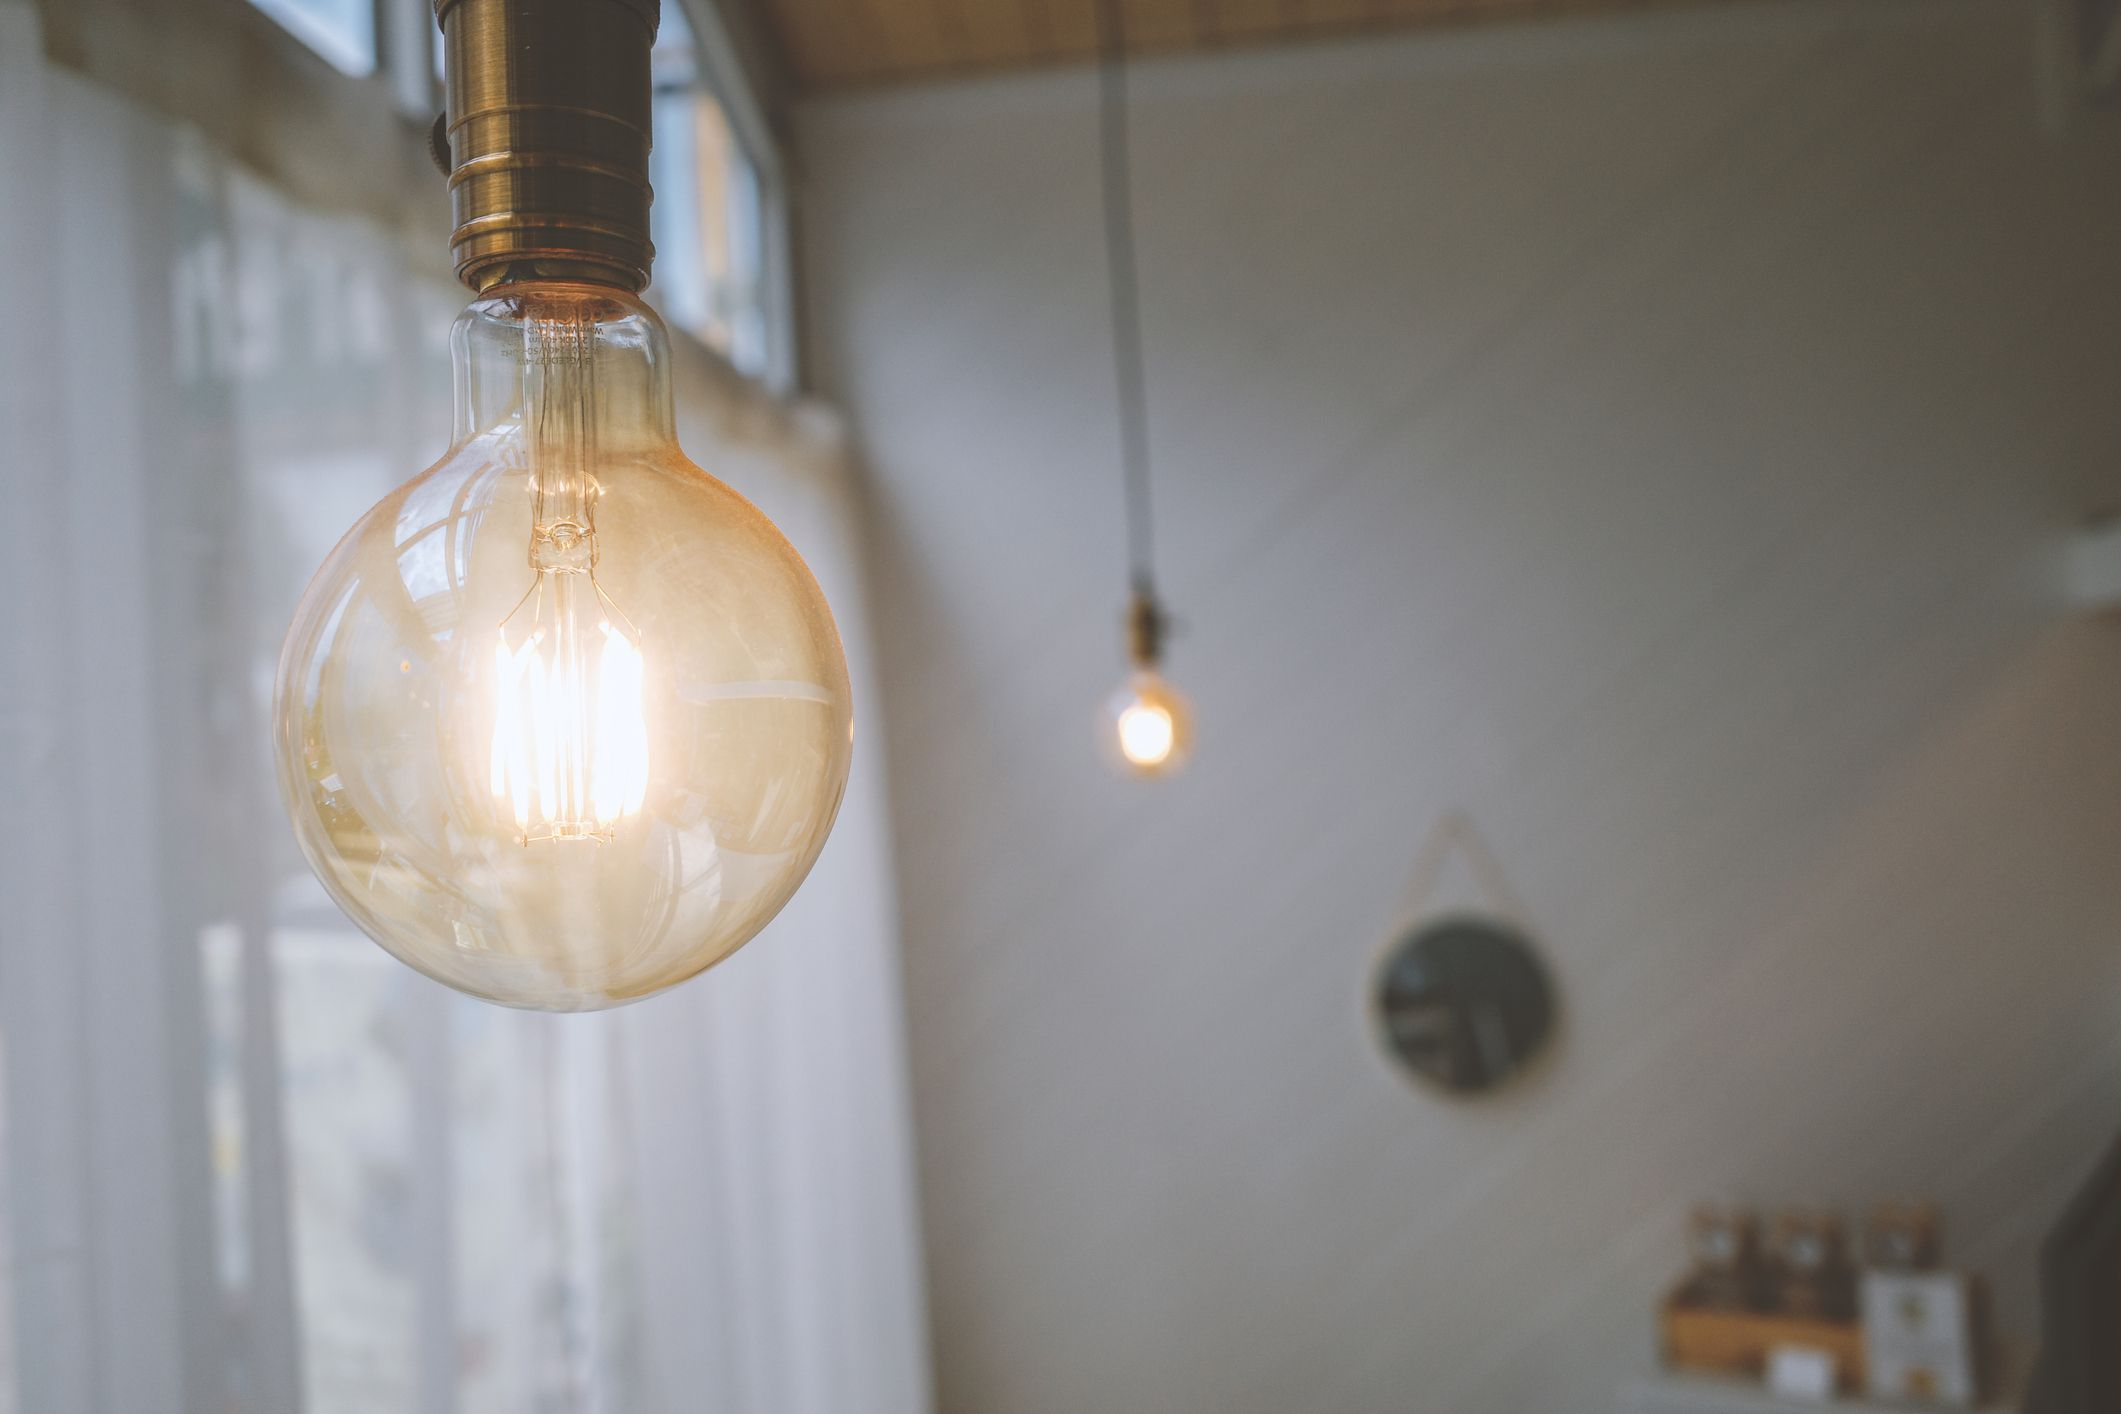 Incandescent light bulbs hang from a ceiling.